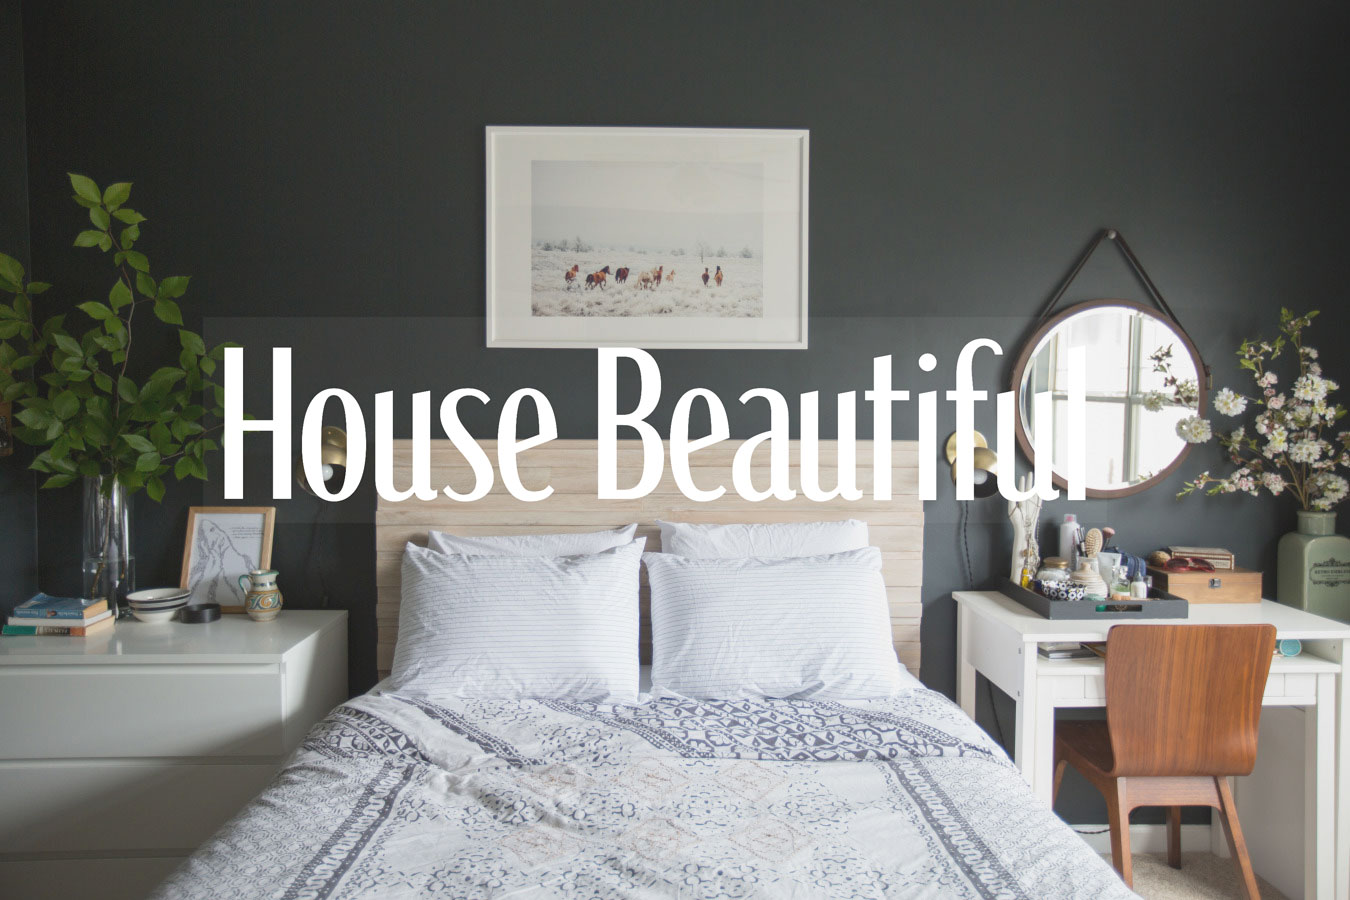 House-Beautiful.jpeg